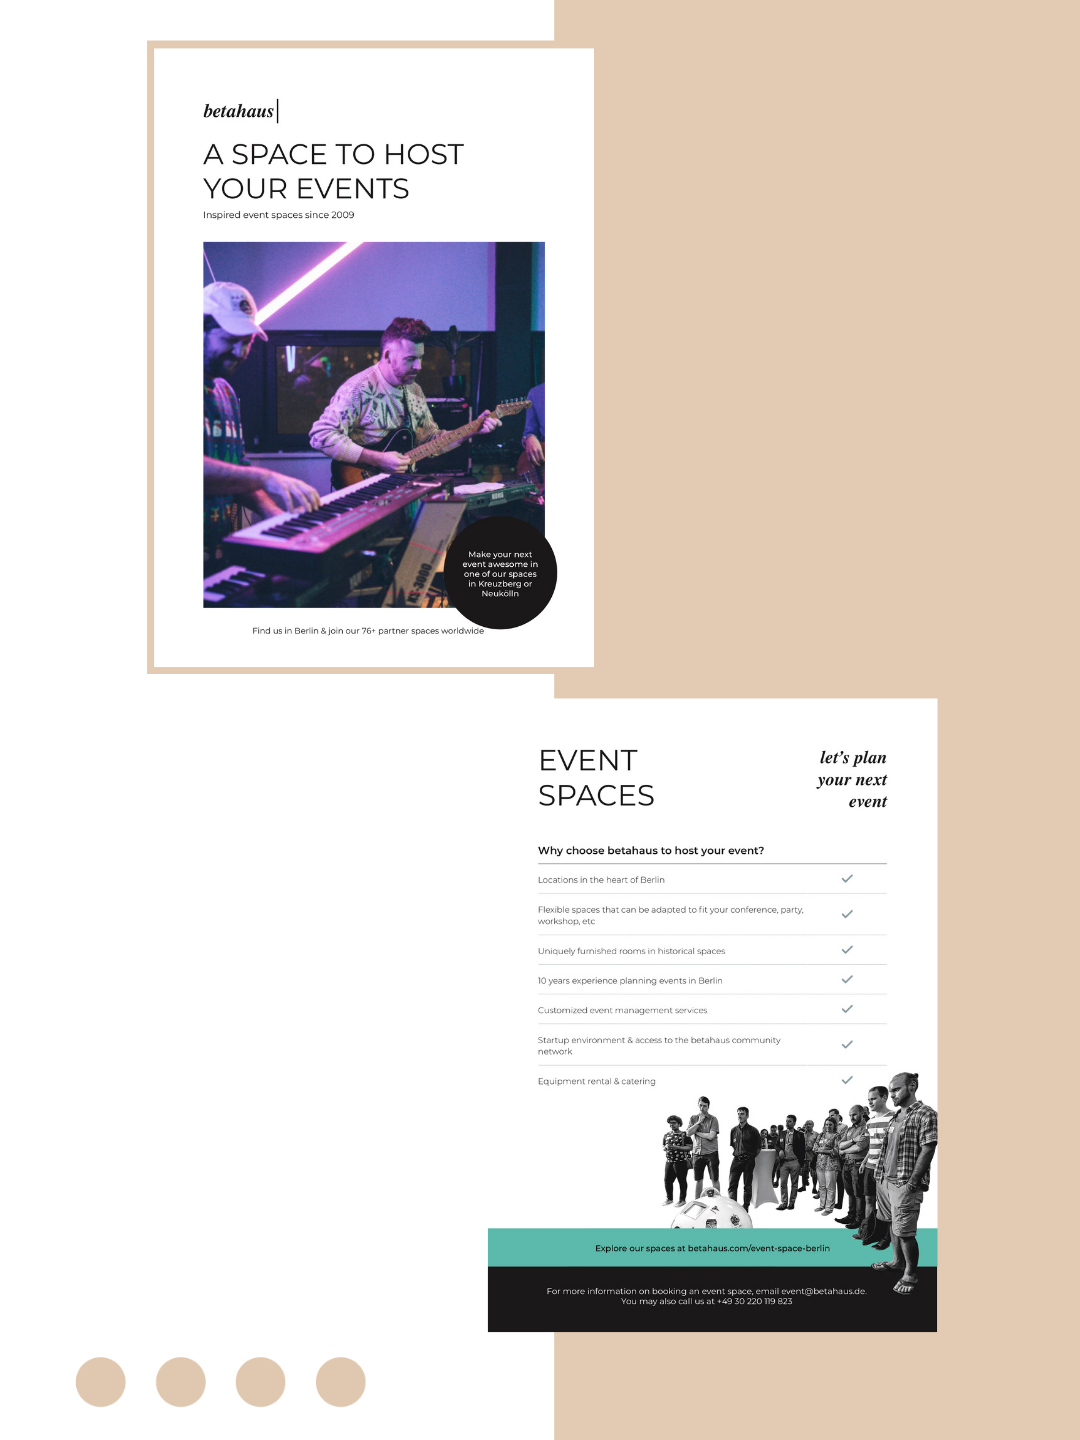 betahaus Events - Event Space Flyer